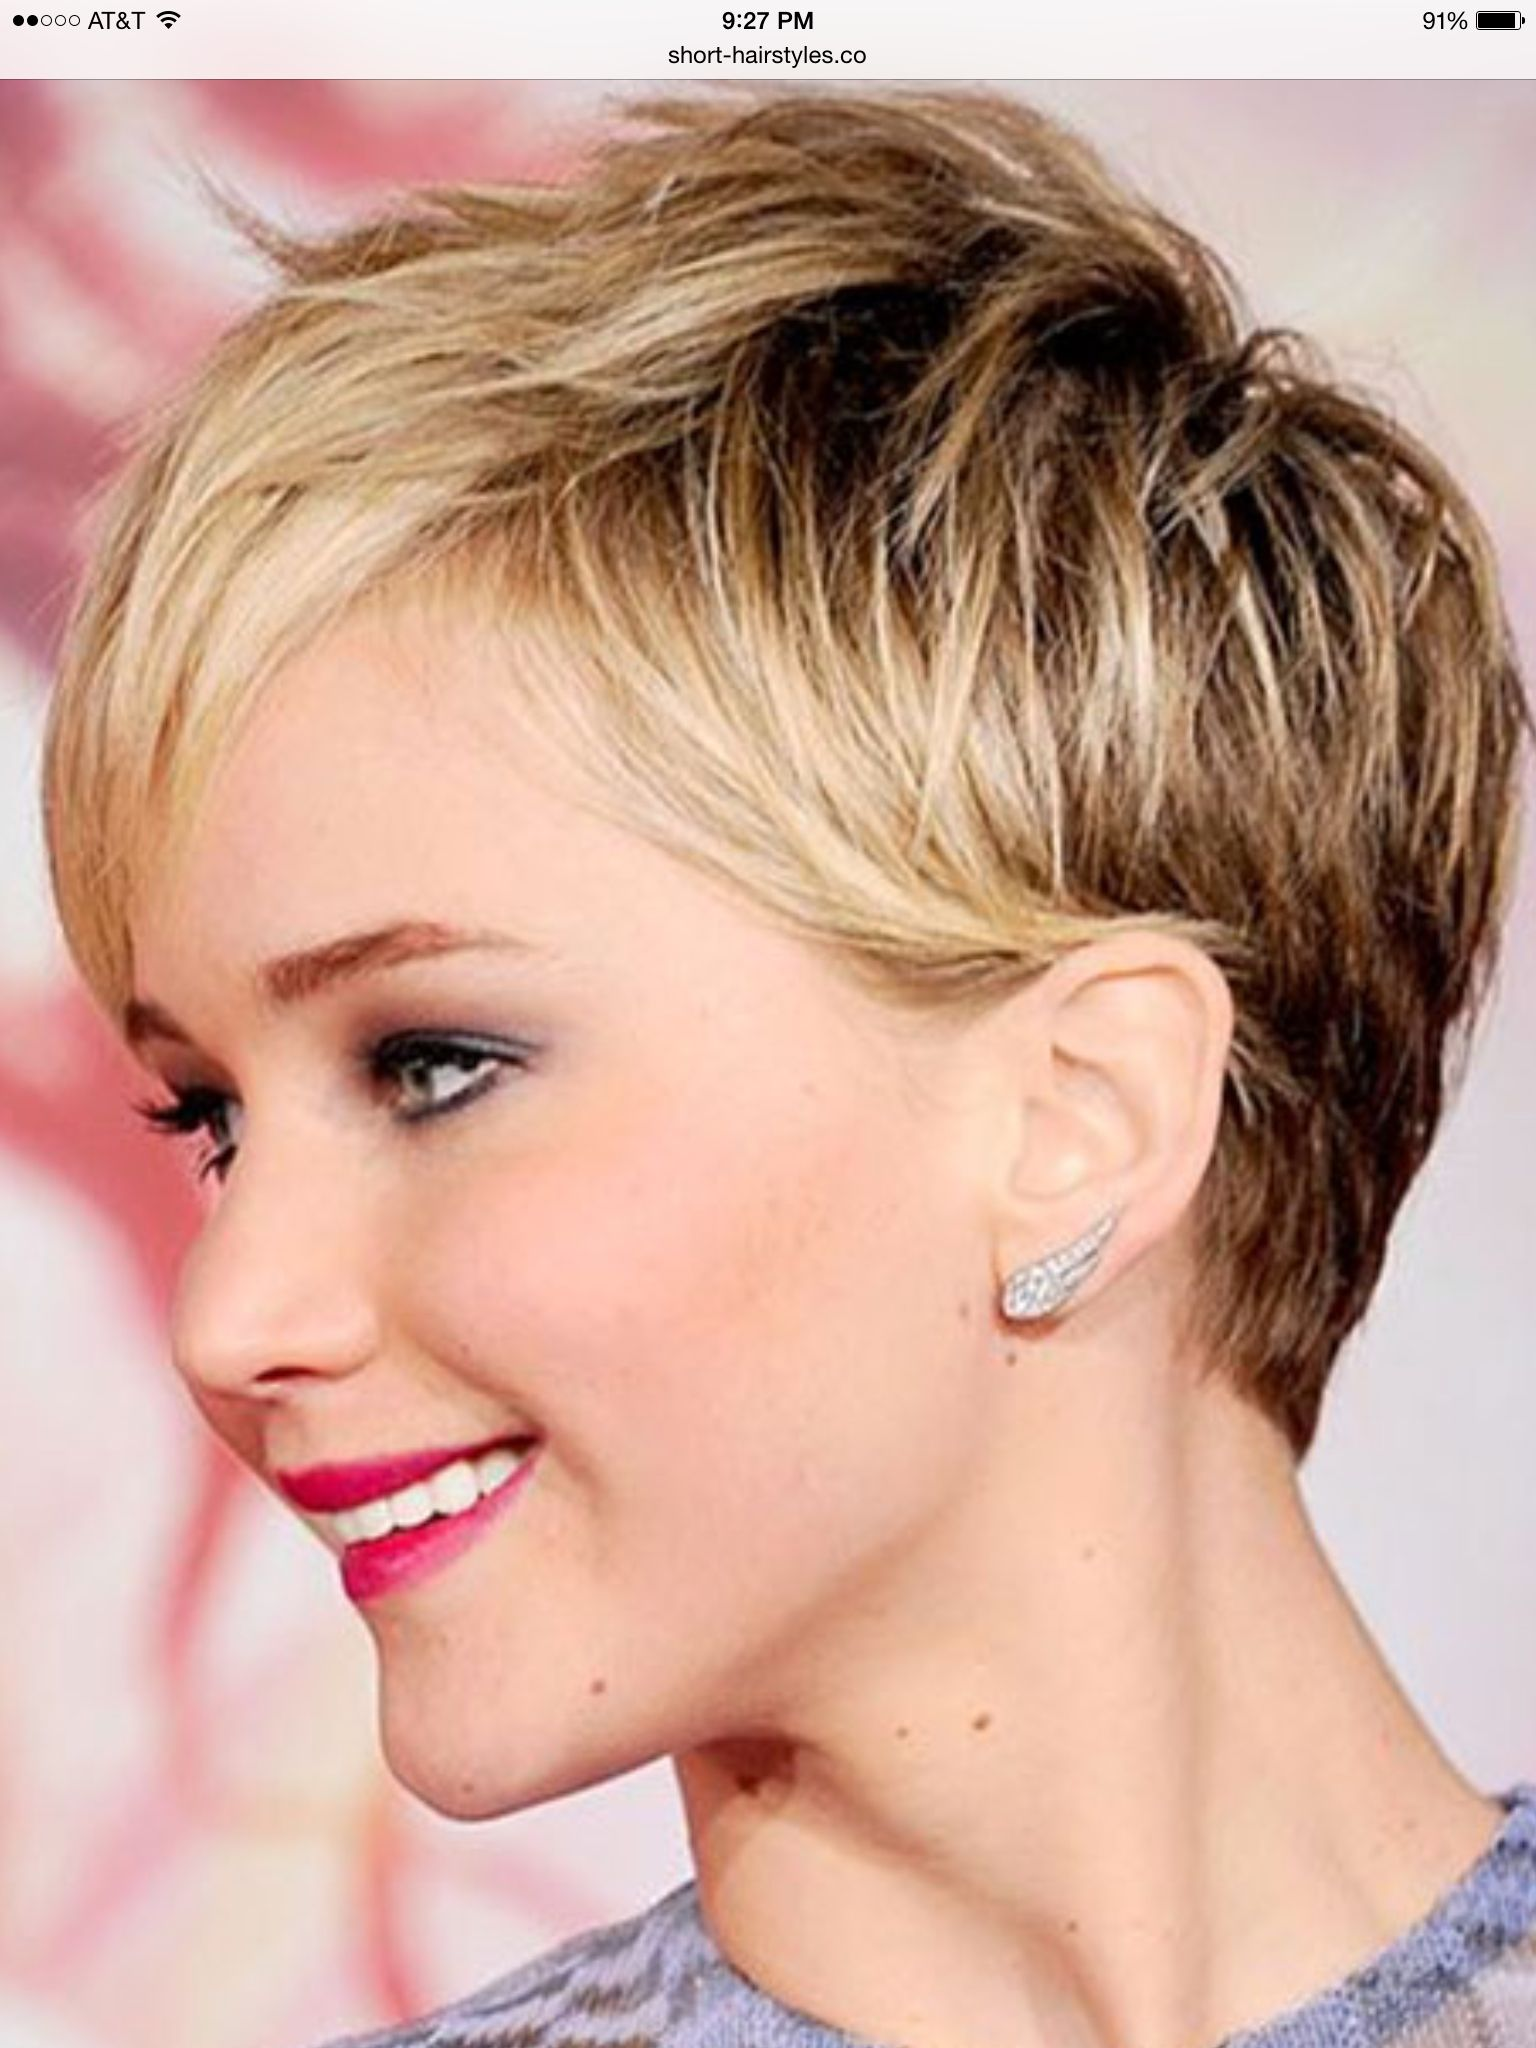 Messy Hairstyles Enchanting Bouffant Hair Makeup  Short Hair Haircuts And Hair Style